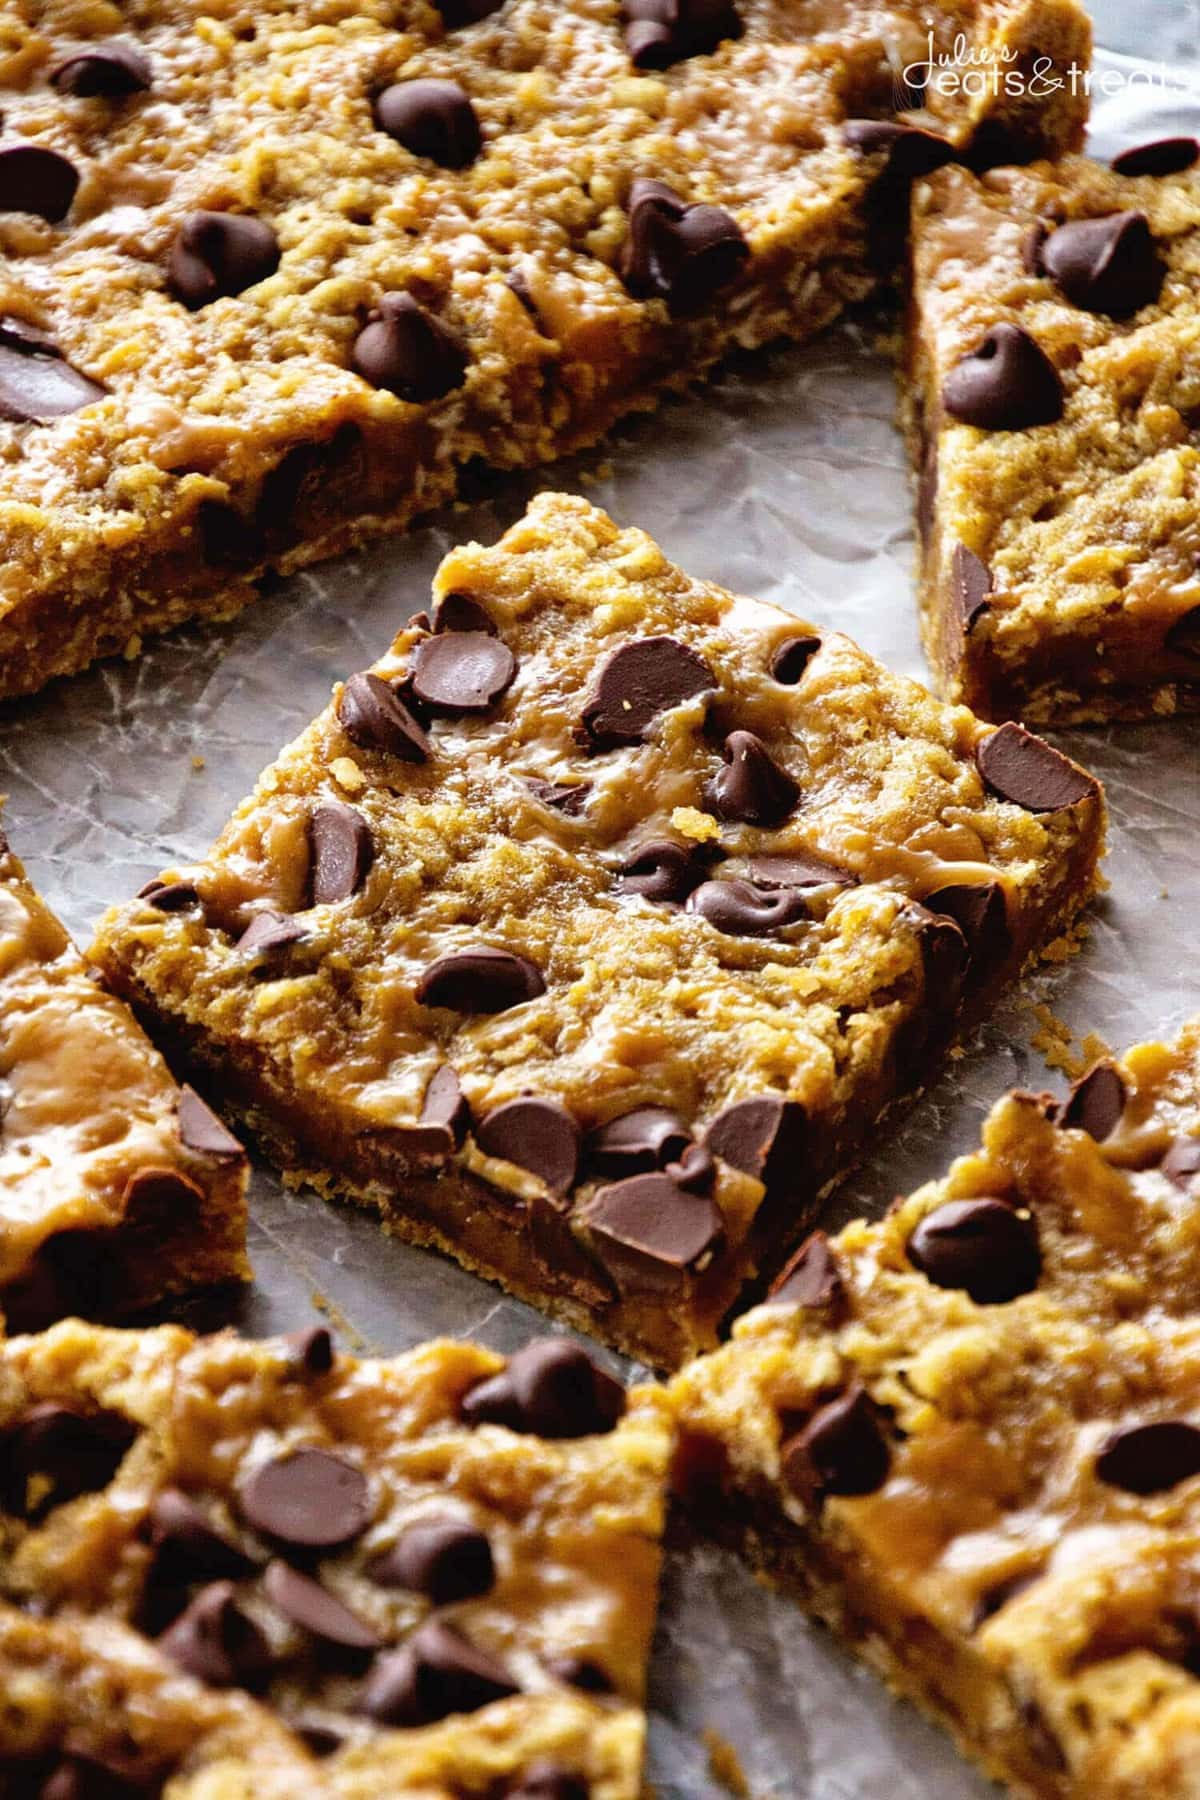 Caramel Oatmeal Bars ~ These Oatmeal Bars Have a Delicious, Ooey, Gooey Layer of Caramel and Sweet Chocolate Chips! Quick, Easy Dessert for Anyone!